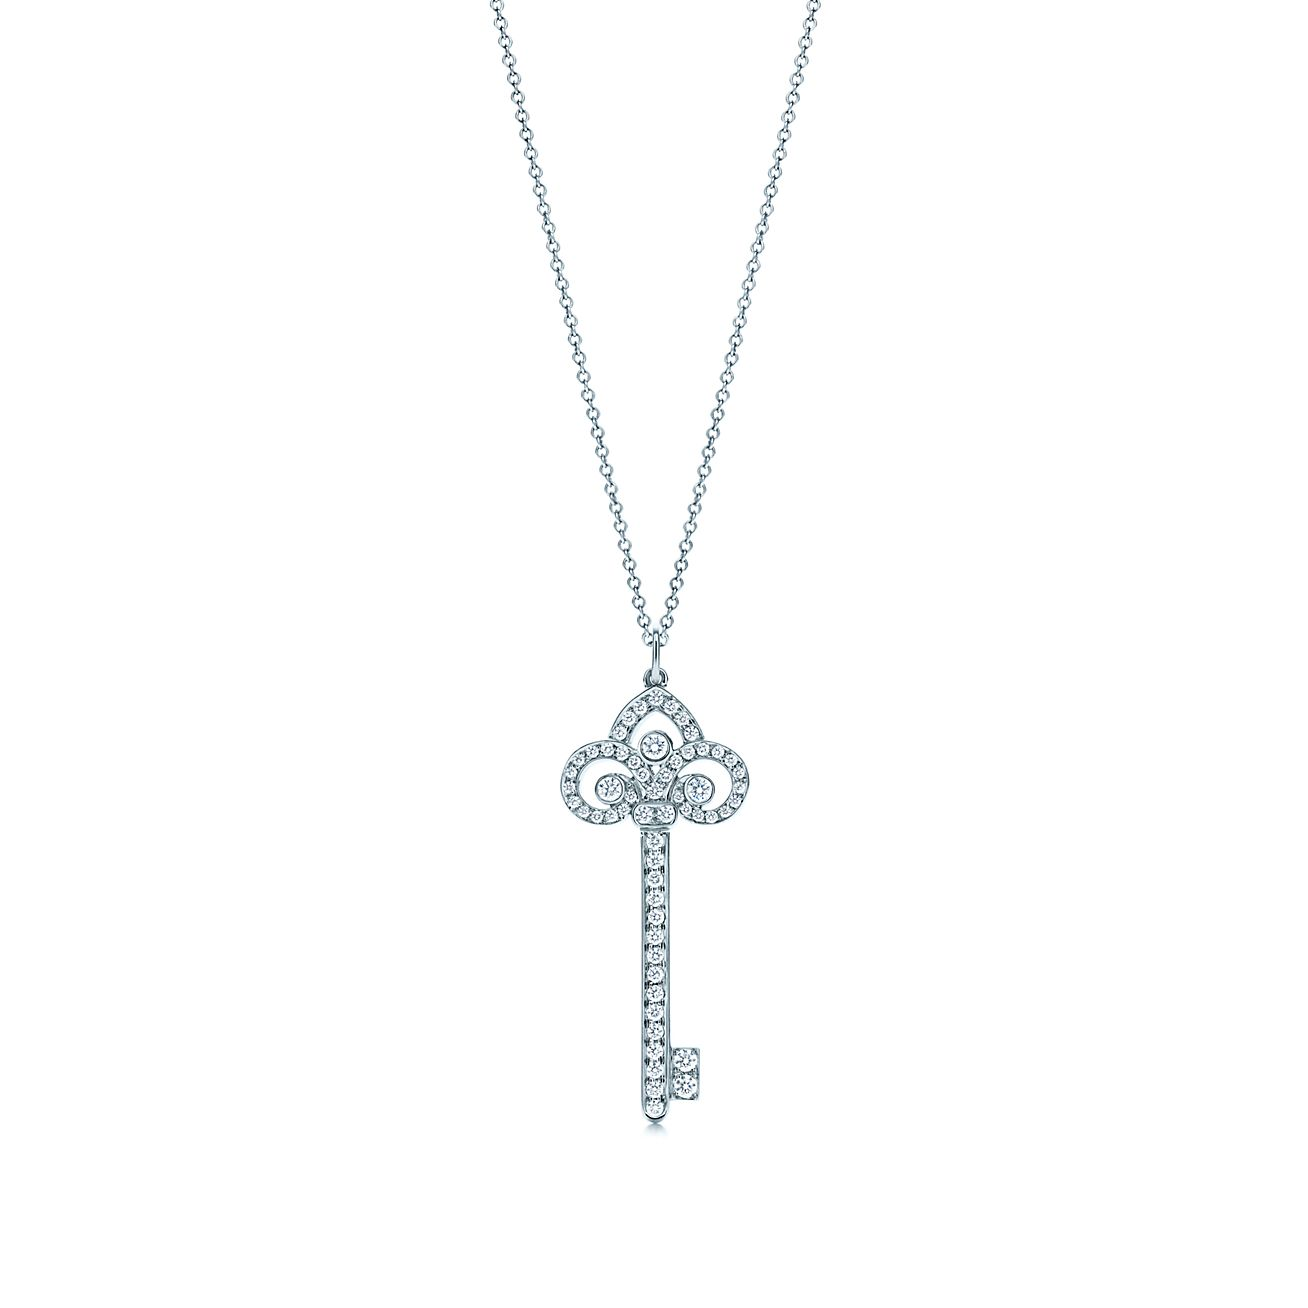 Tiffany keys fleur de lis key pendant with diamonds in platinum on tiffany keysfleur de lis key pendant aloadofball Gallery